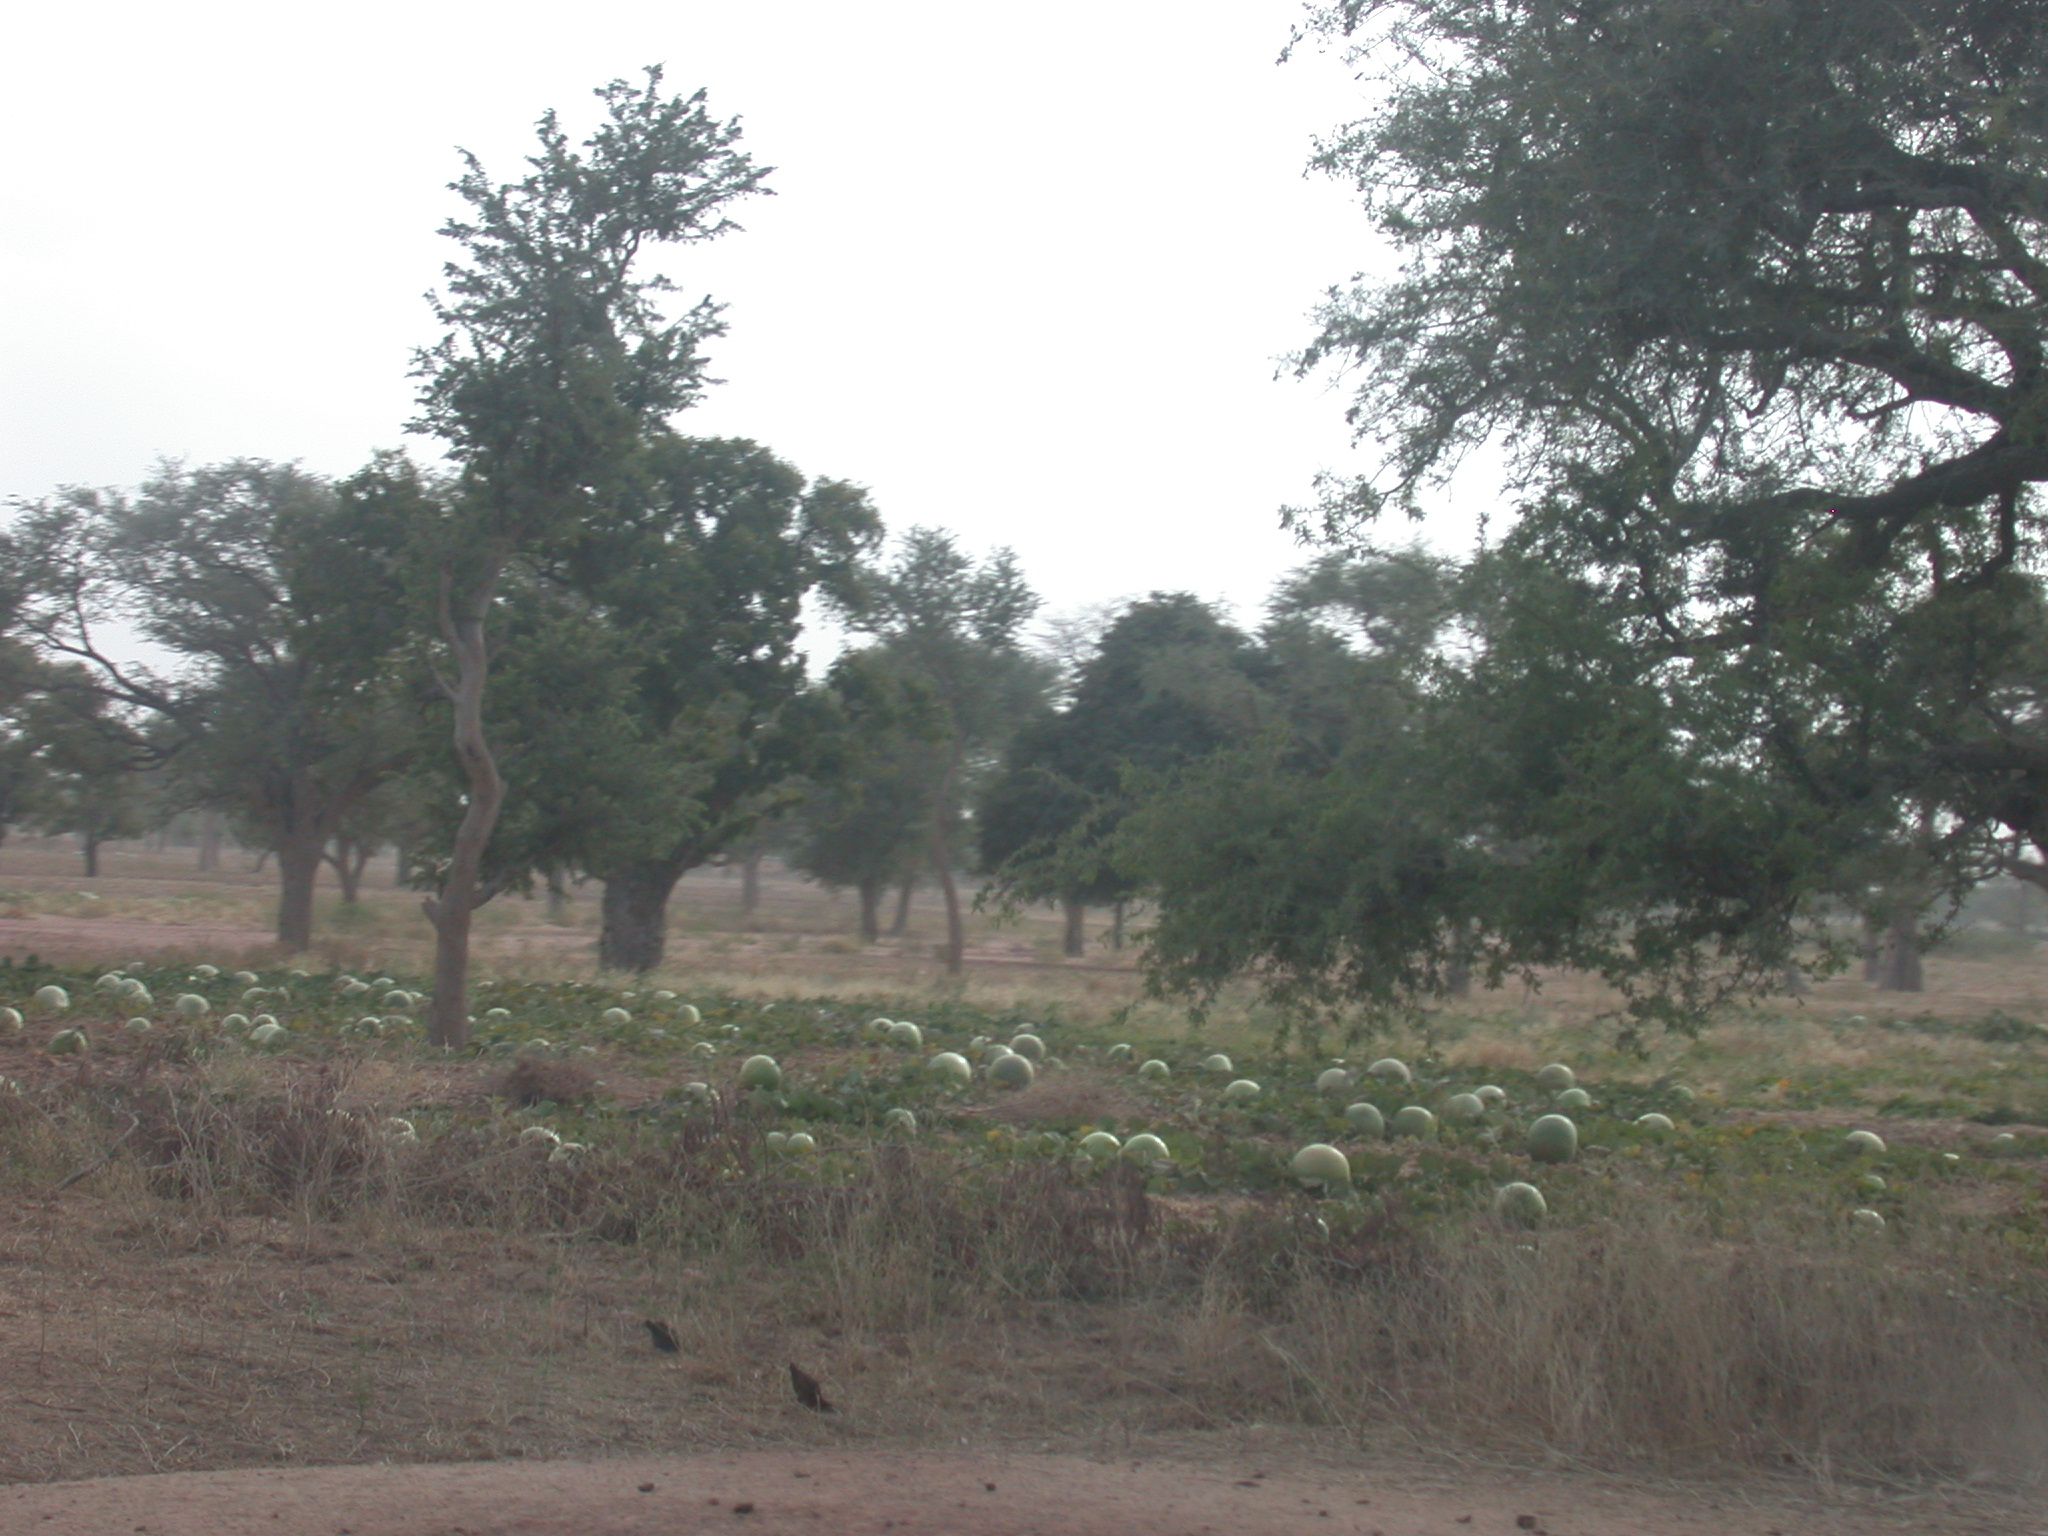 Melons Growing on Route From Bamako to Timbuktu, Mali